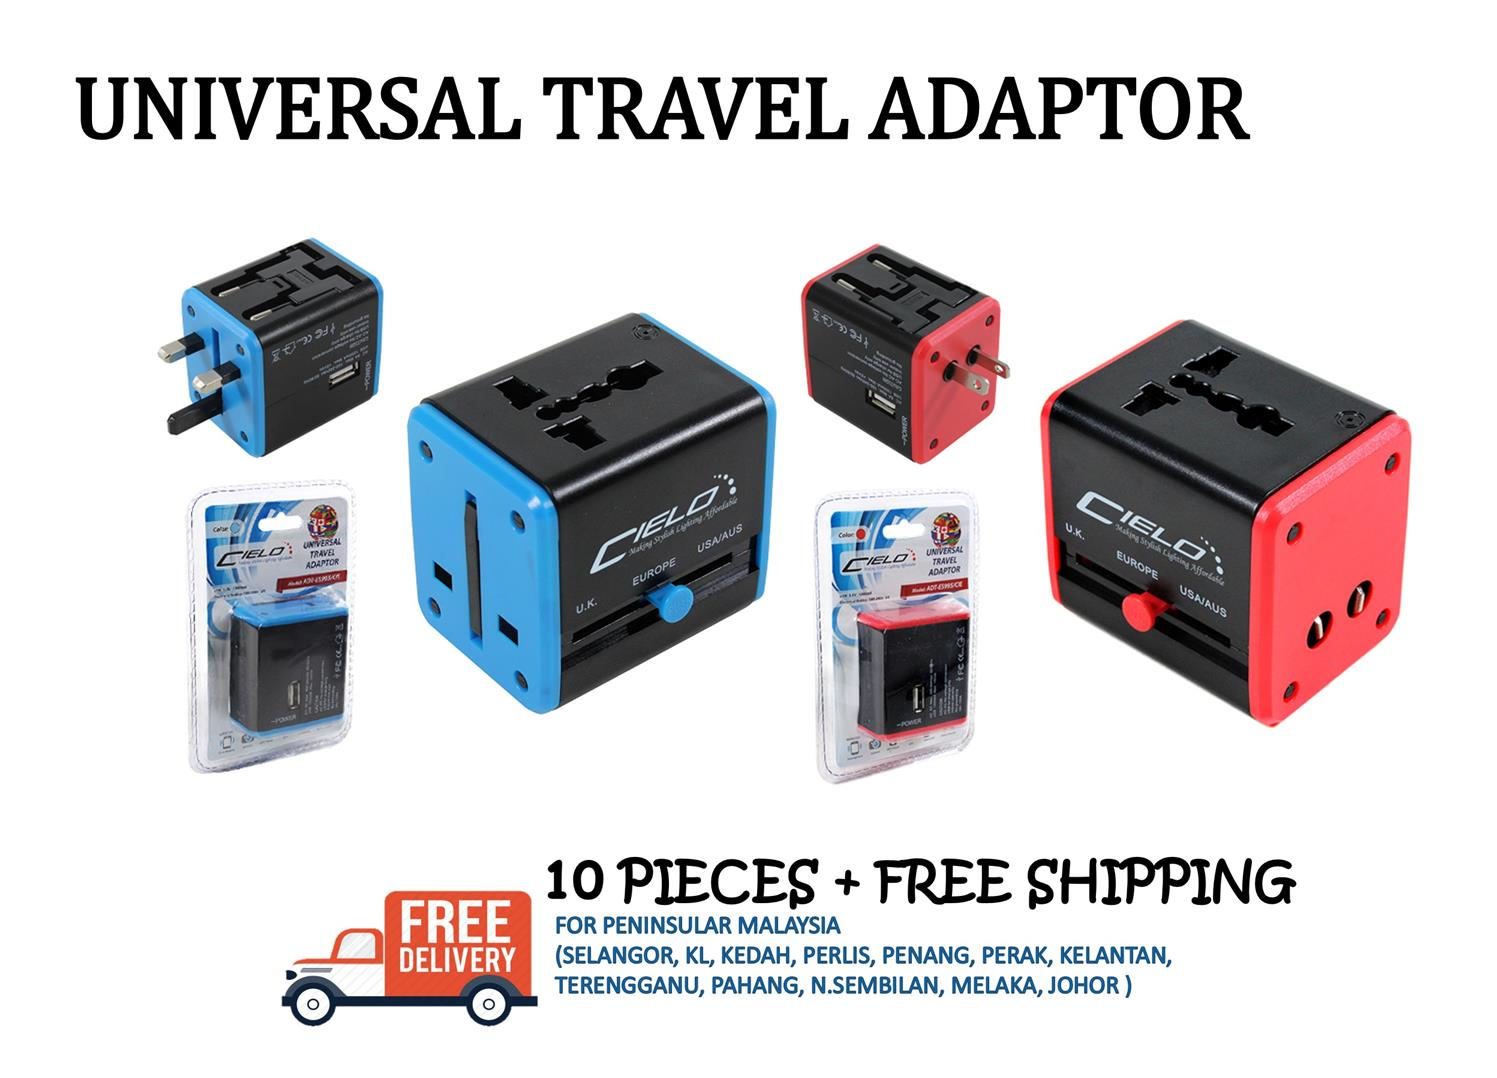 UNIVERSAL TRAVEL ADAPTOR - 10 PIECES + FREE SHIPPING